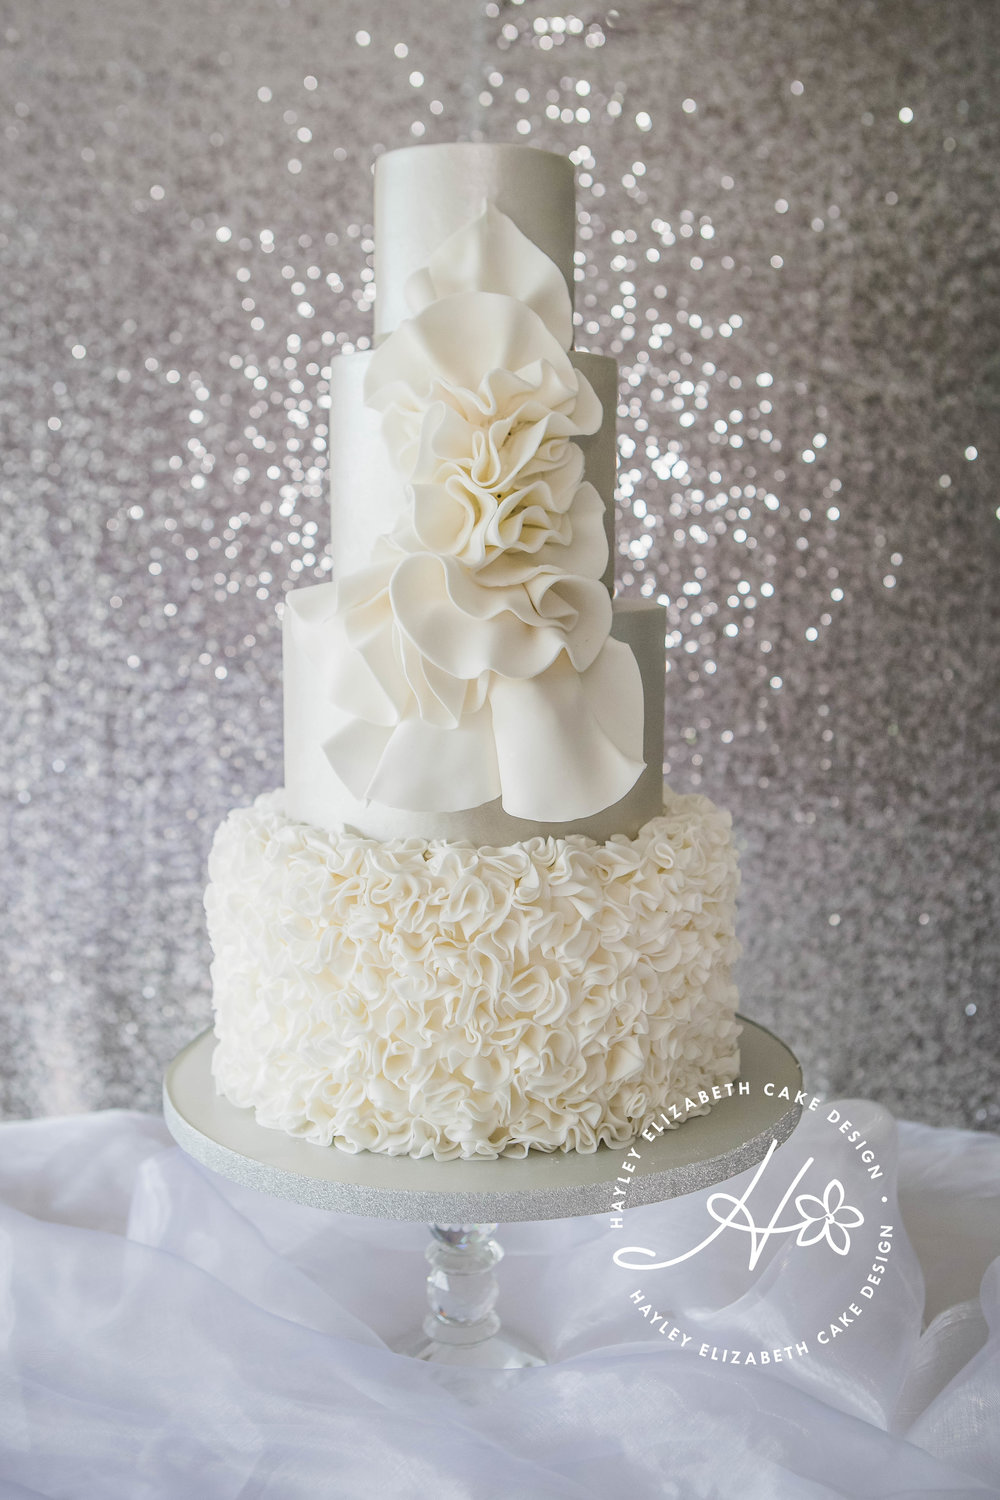 silver-shimmer-wedding-cake-with-large-white-ruffle-detailing.jpg